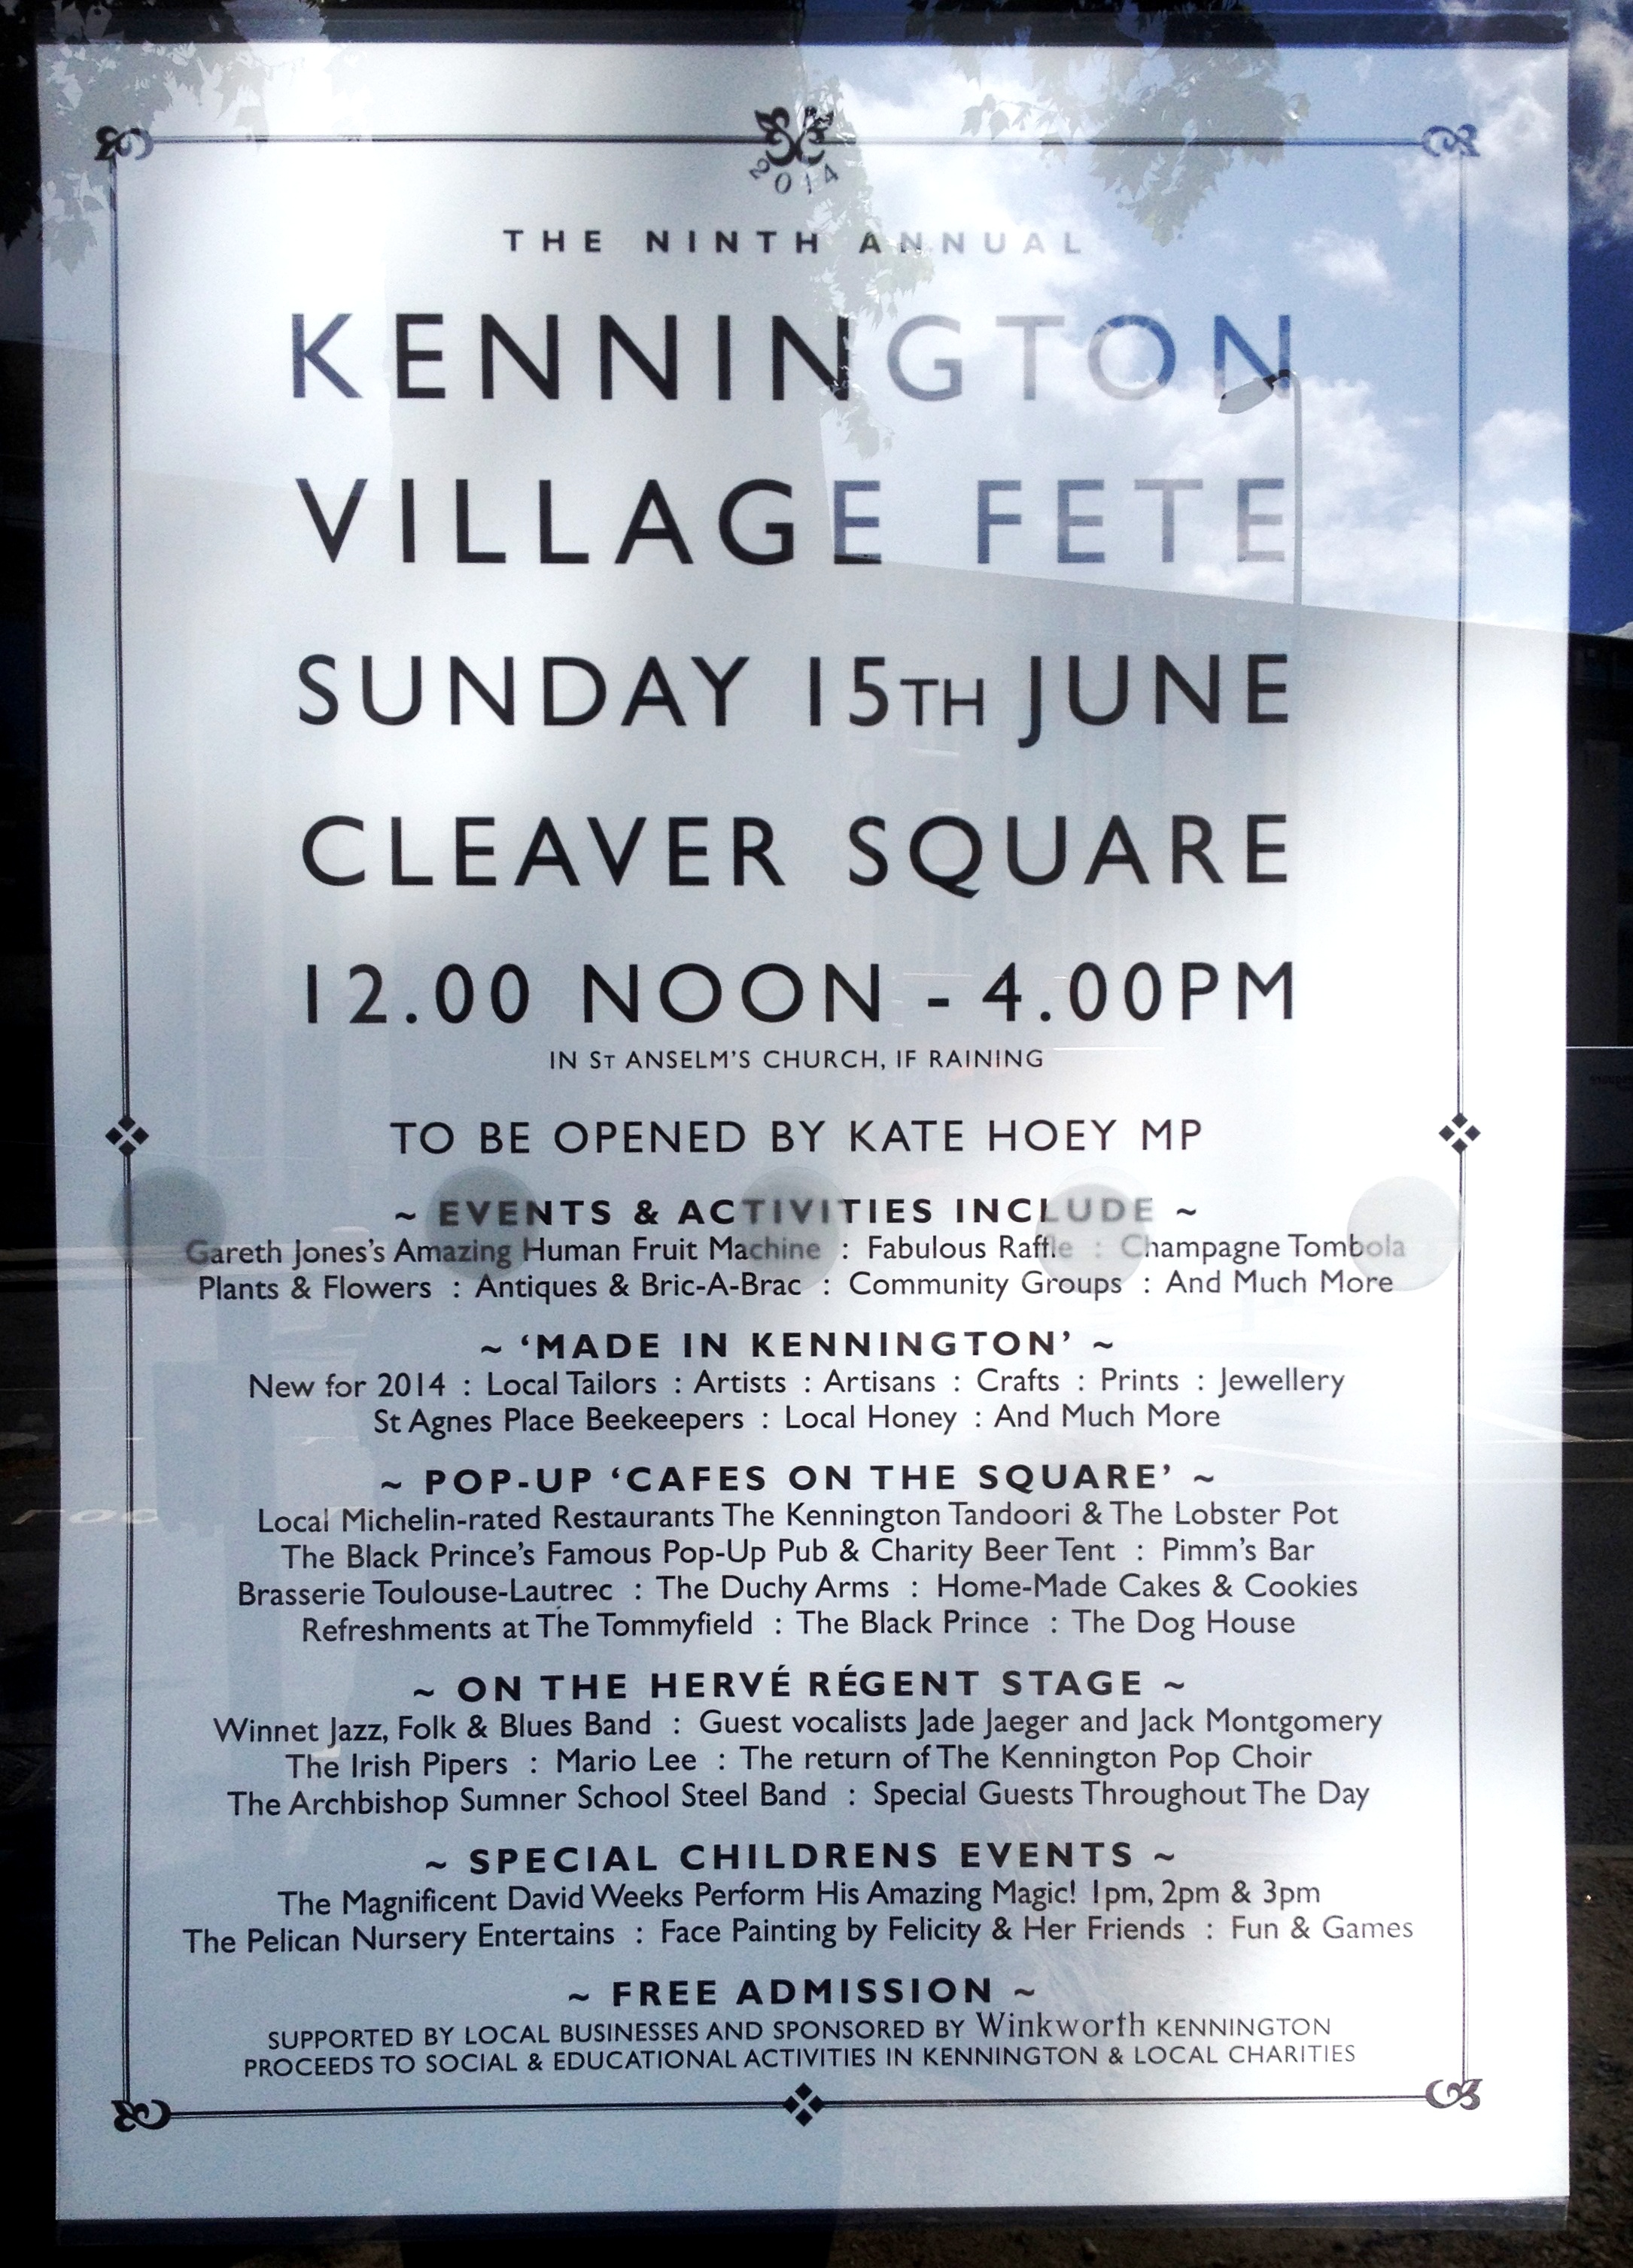 The ninth annual Kennington Village Fete - kenningtonrunoff.com